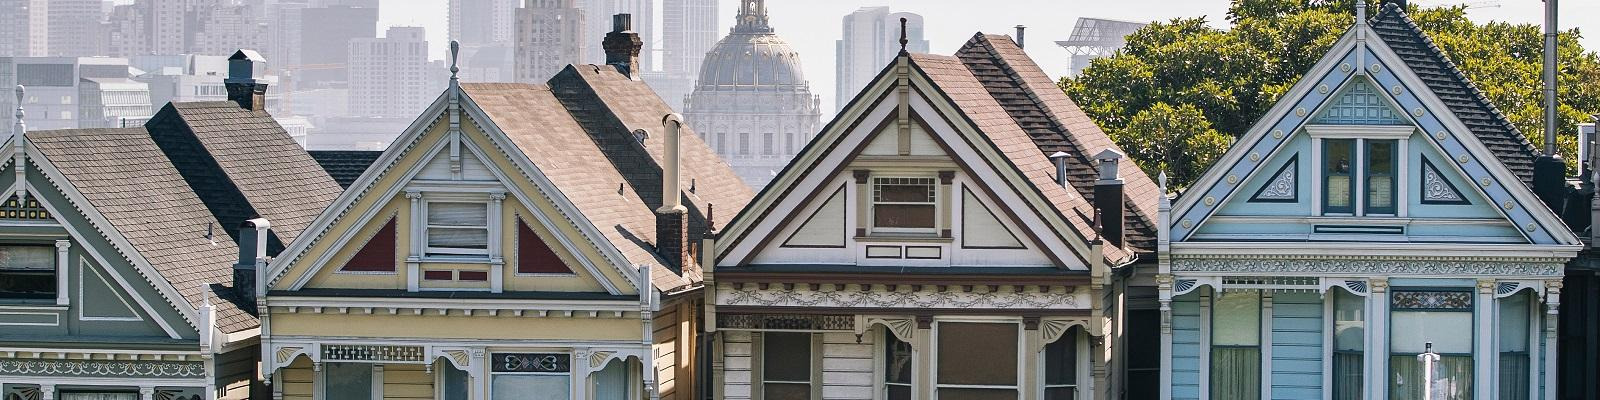 The famous Painted Ladies in Alamo Square, San Francisco